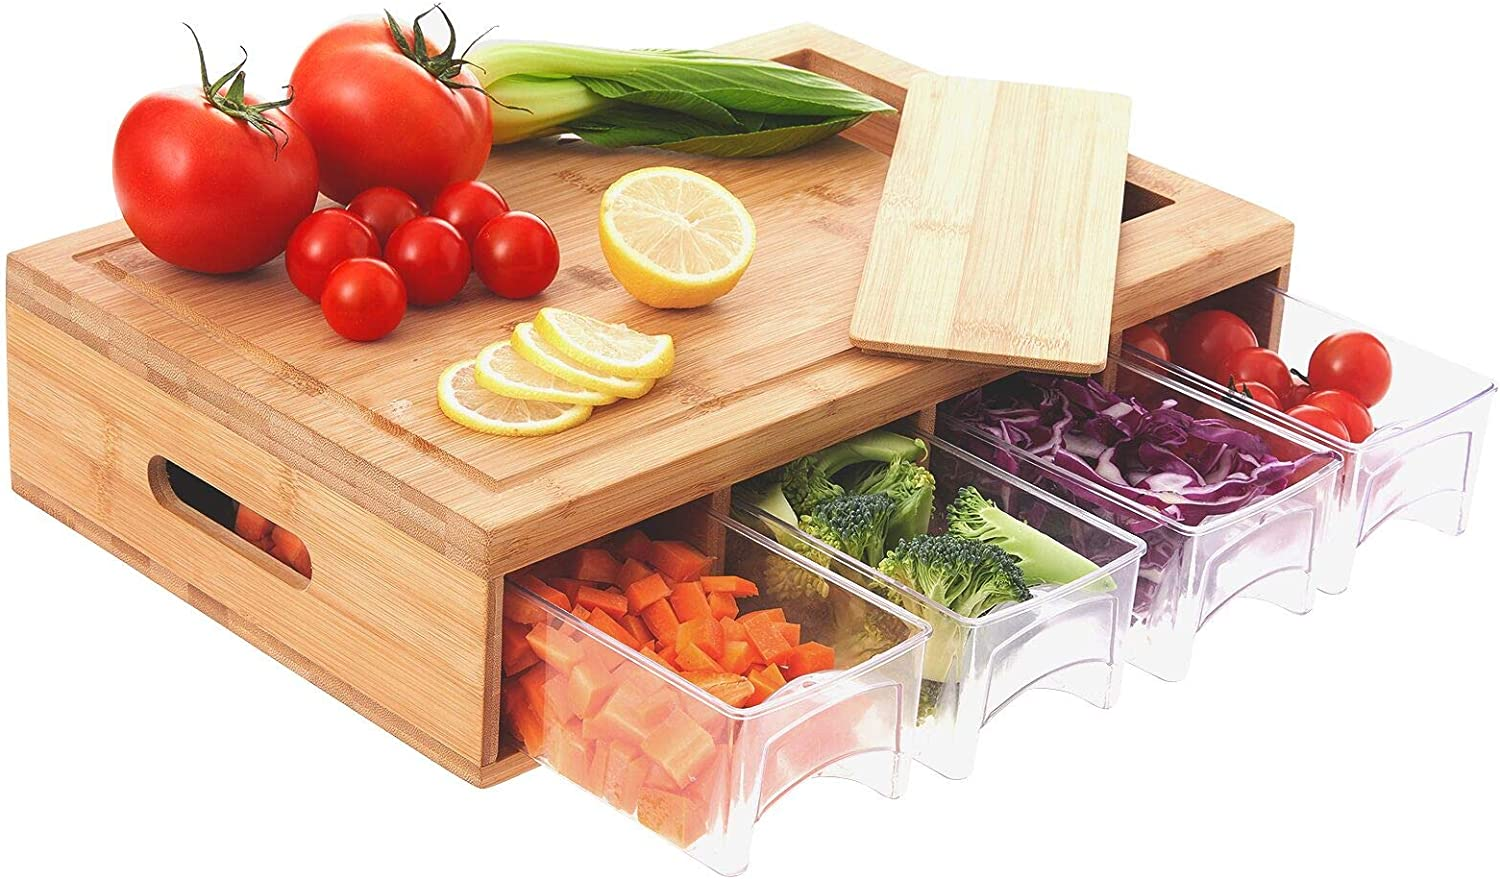 Bamboo Cutting Board with Containers, Large Sliding Opening Juice Grooves Handles to Save Kitchen Space and Easily Clean, Prepdesk for Food Prep and Storage, Chopping Board with Bamboo Lids